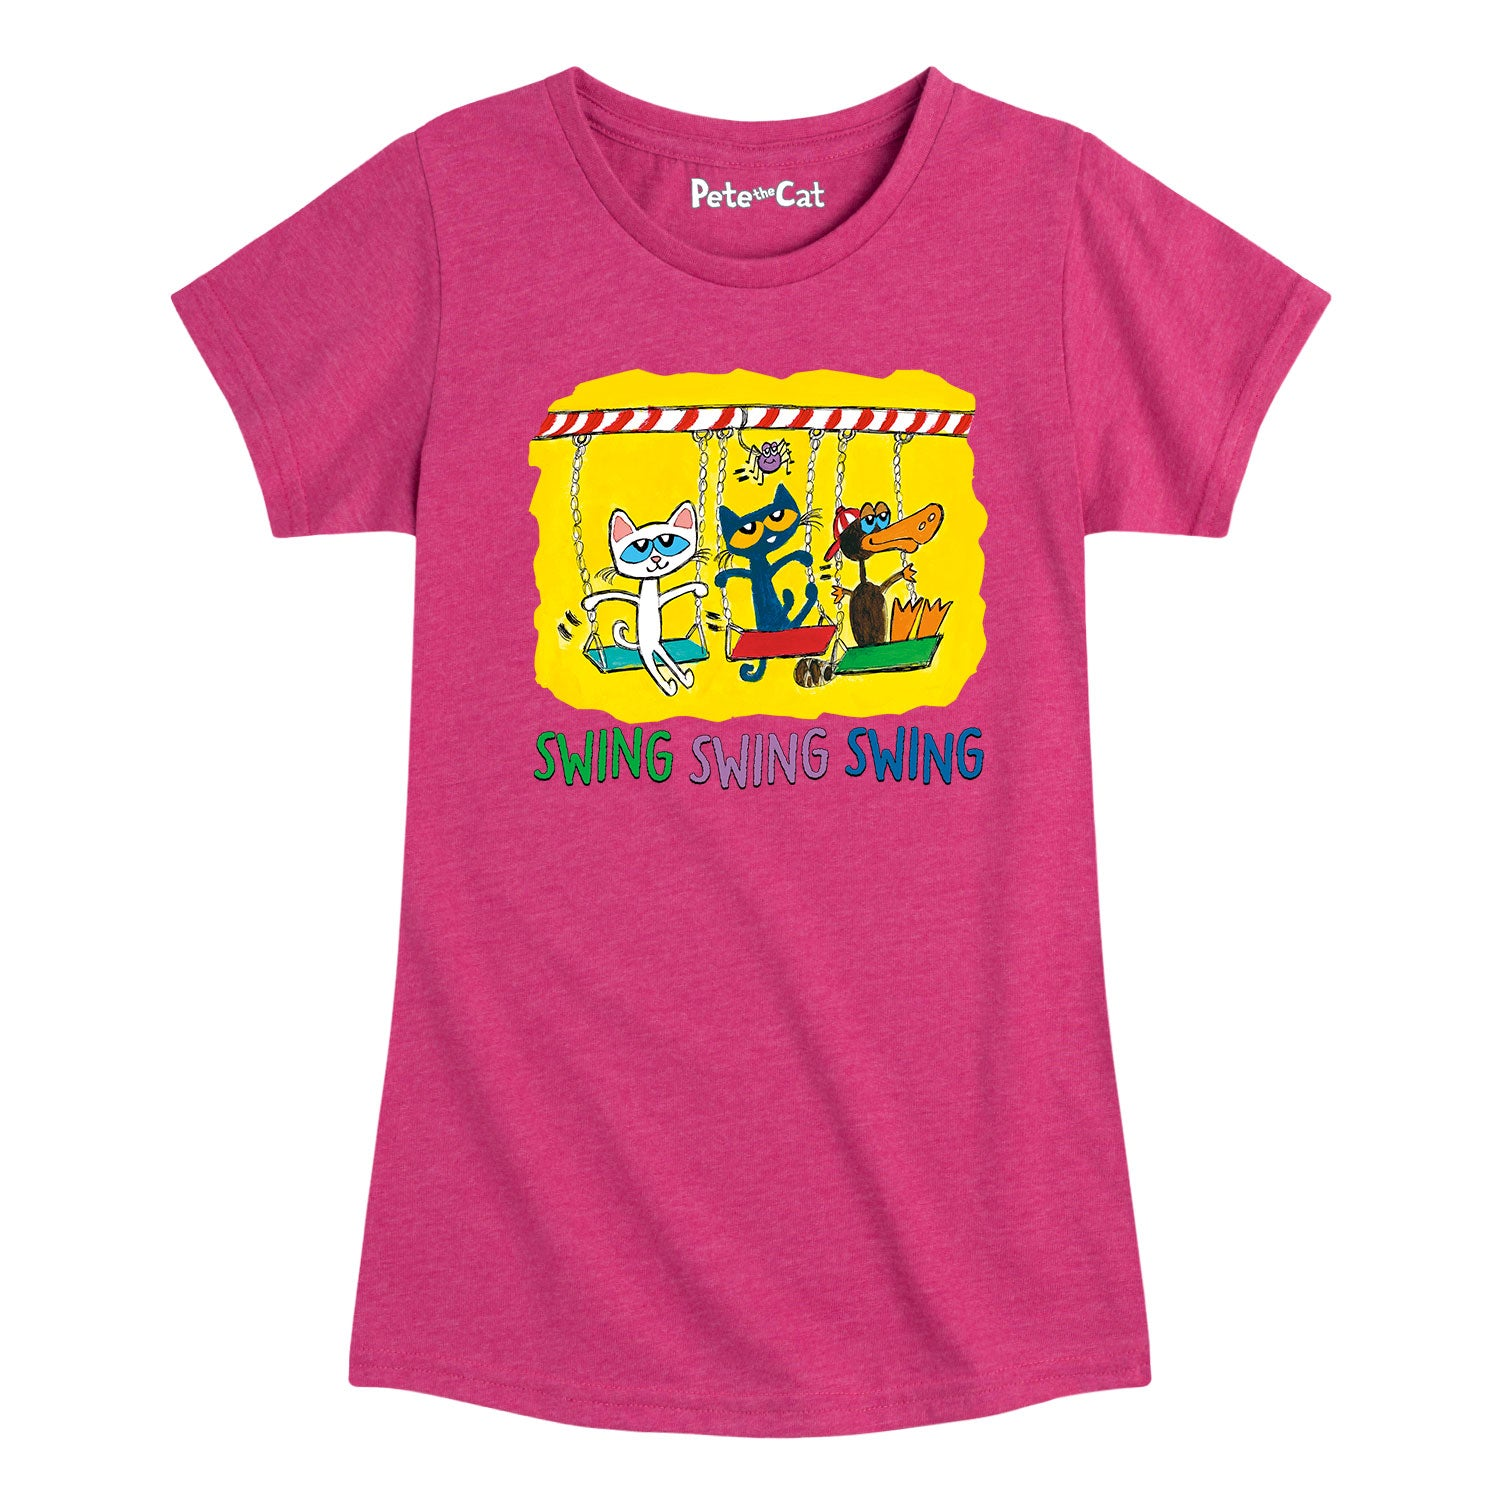 Swing Time - Youth & Toddler Girls Short Sleeve T-Shirt